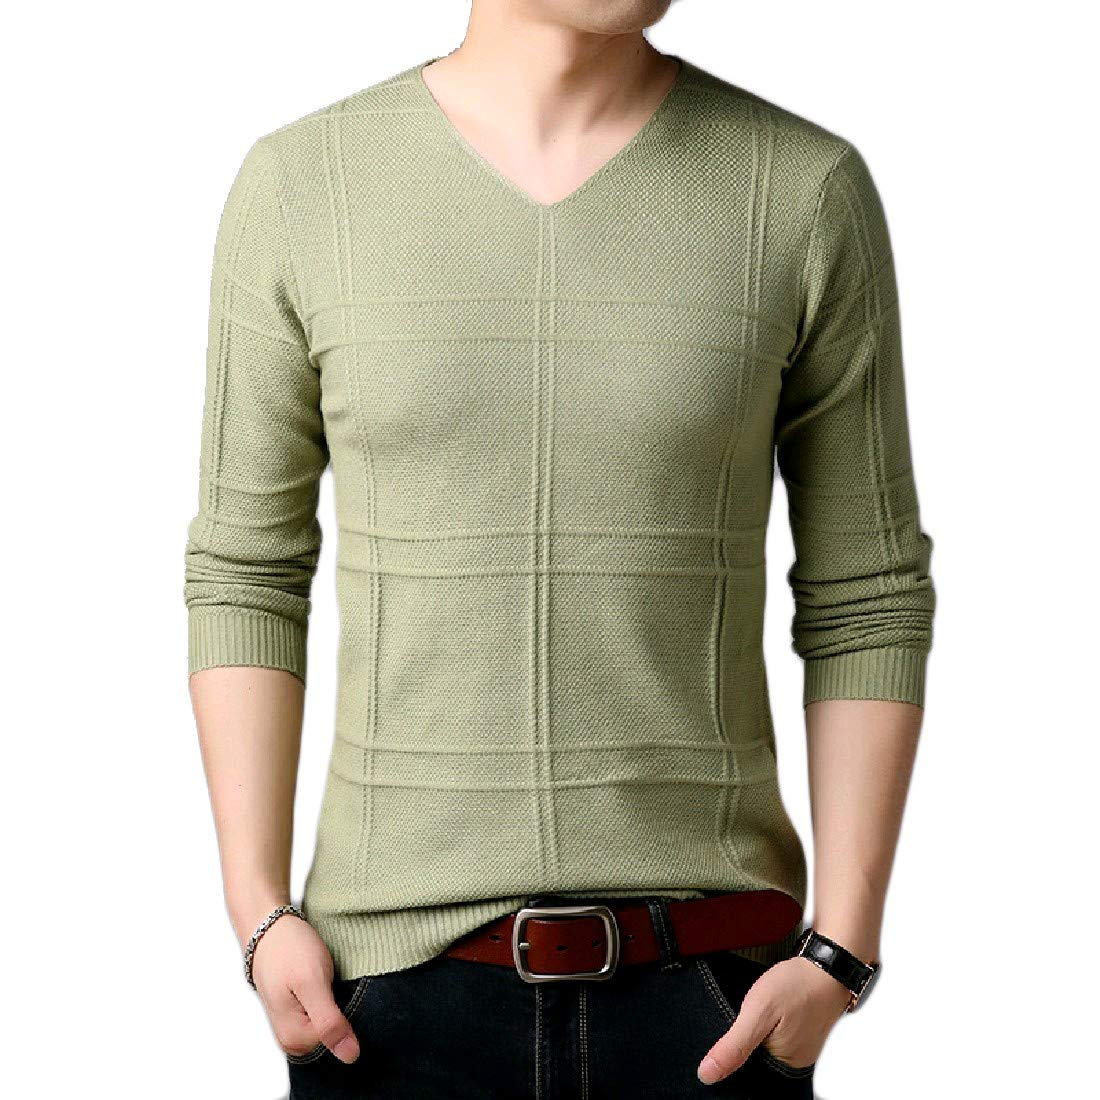 YUNY Mens Crewneck Leisure Business Oversize Pullovers Sweater 27 XL